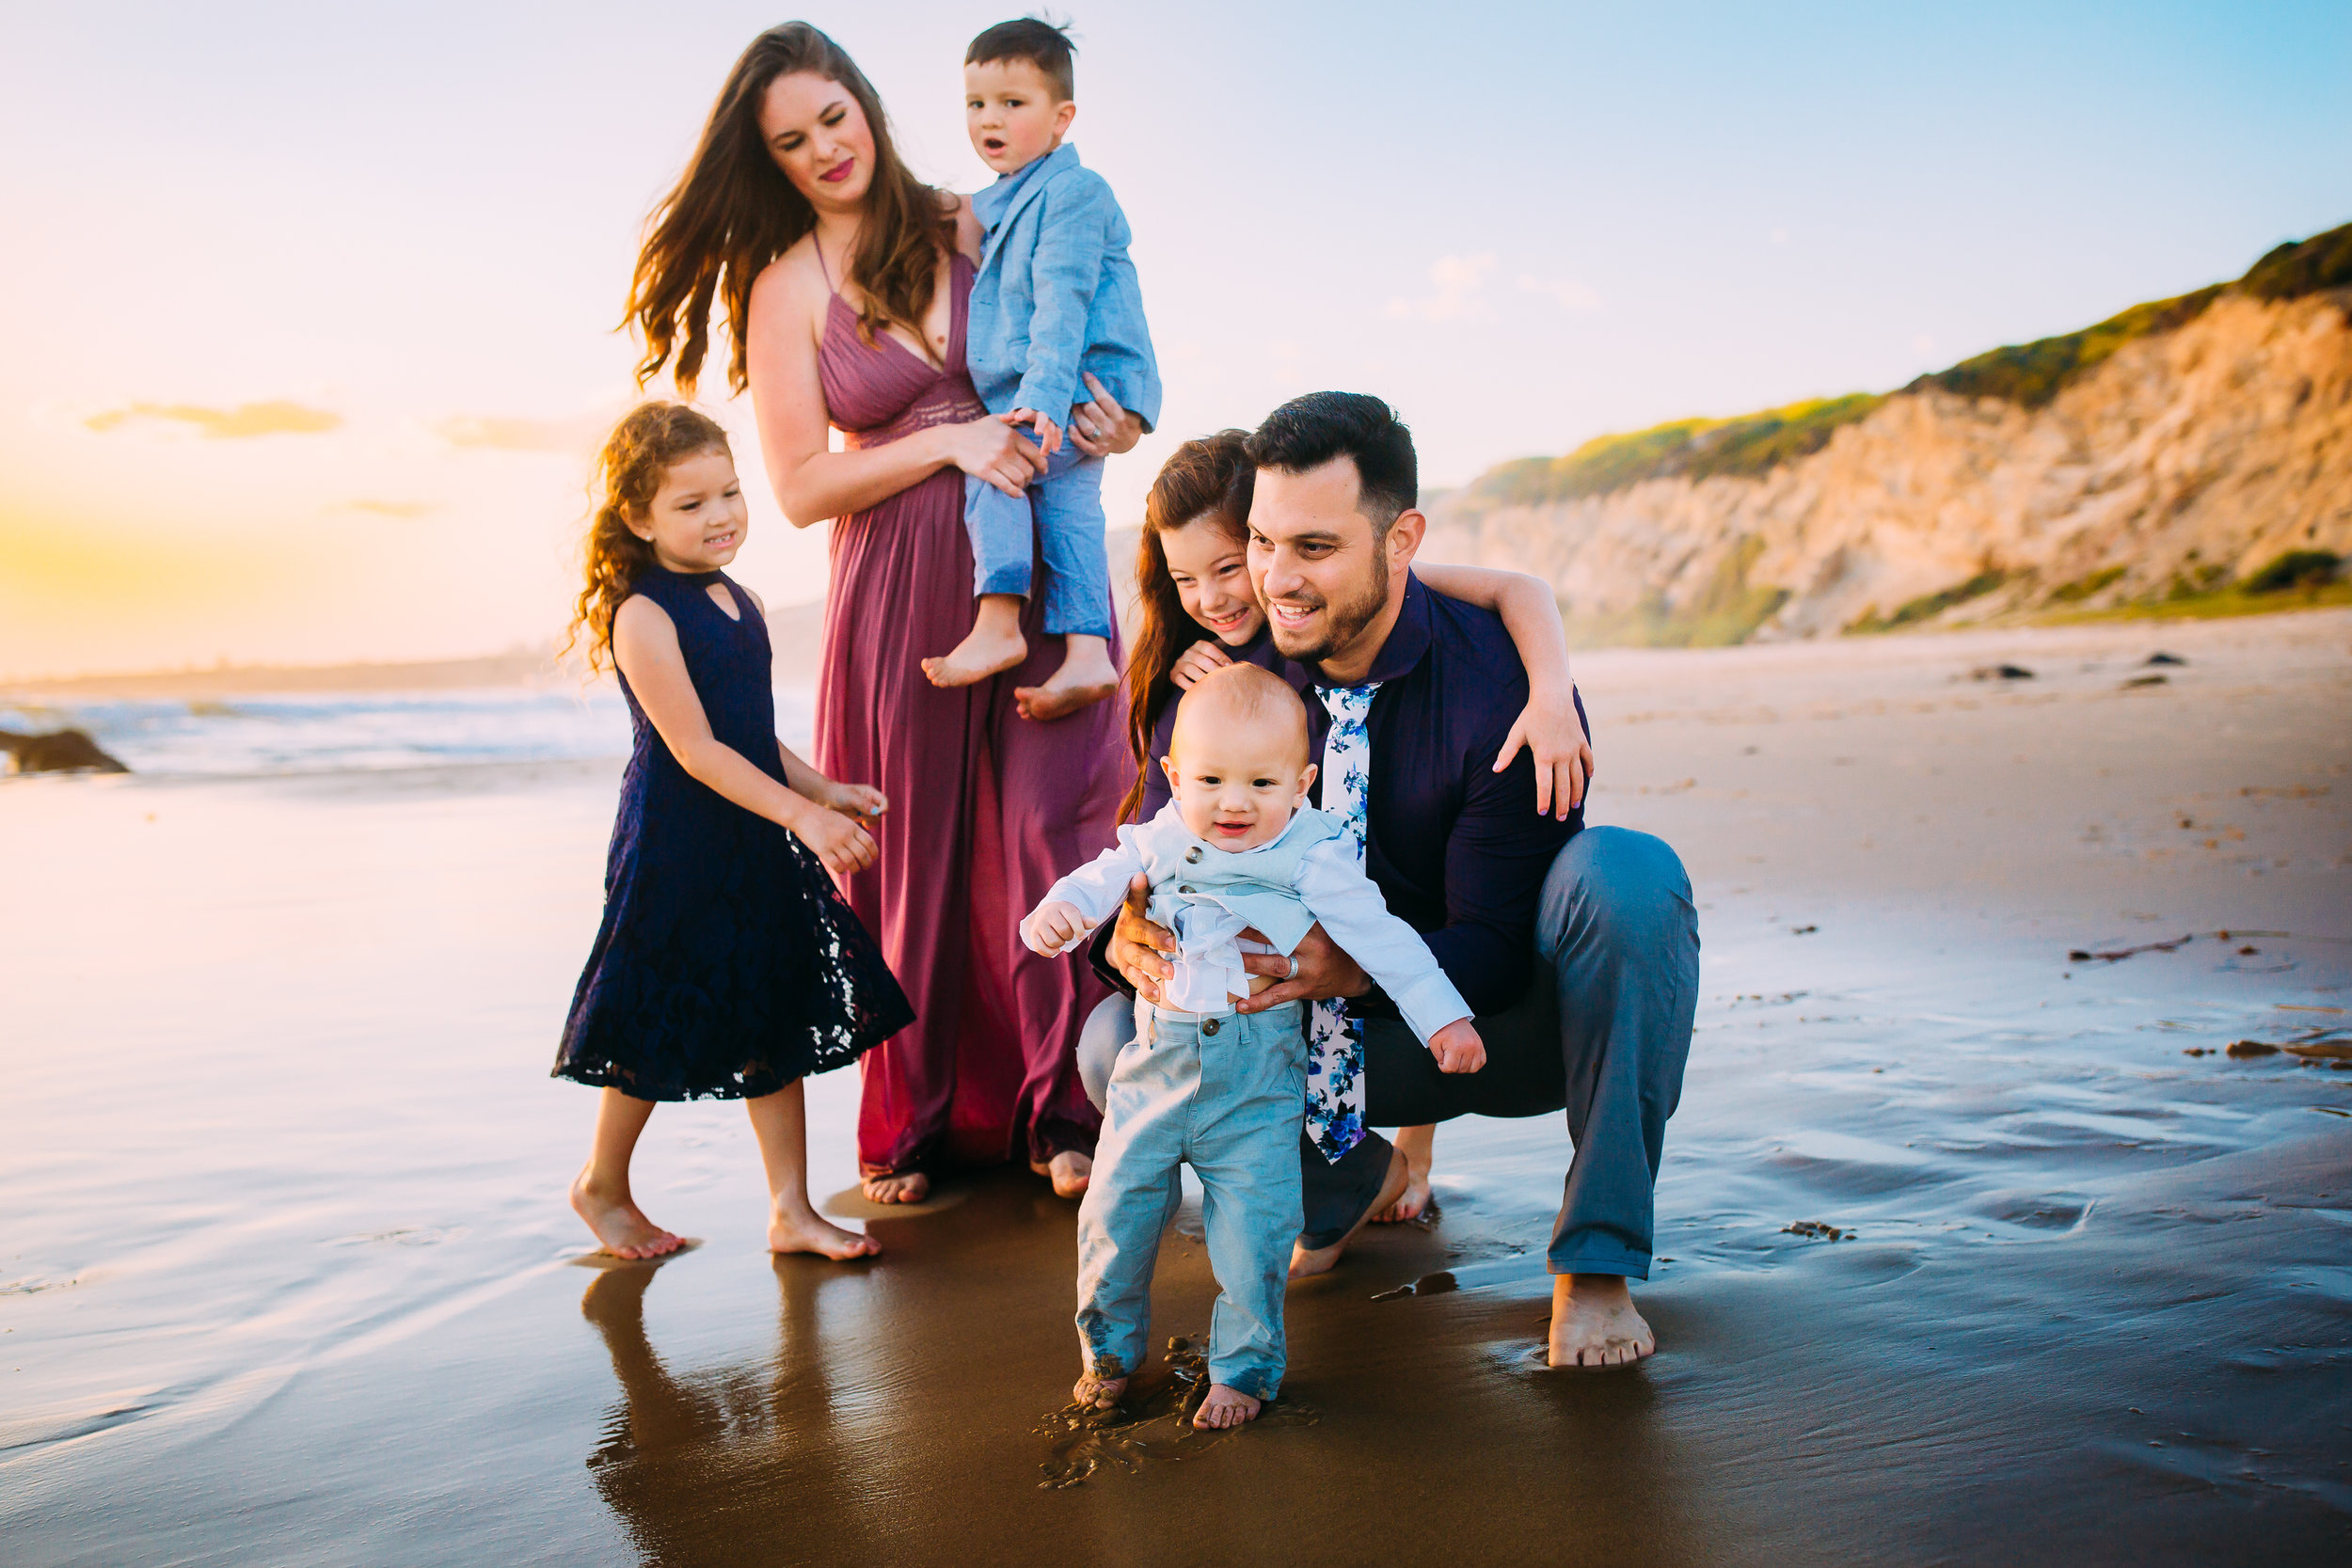 family photographer in Newport Beach, Orange County, CA